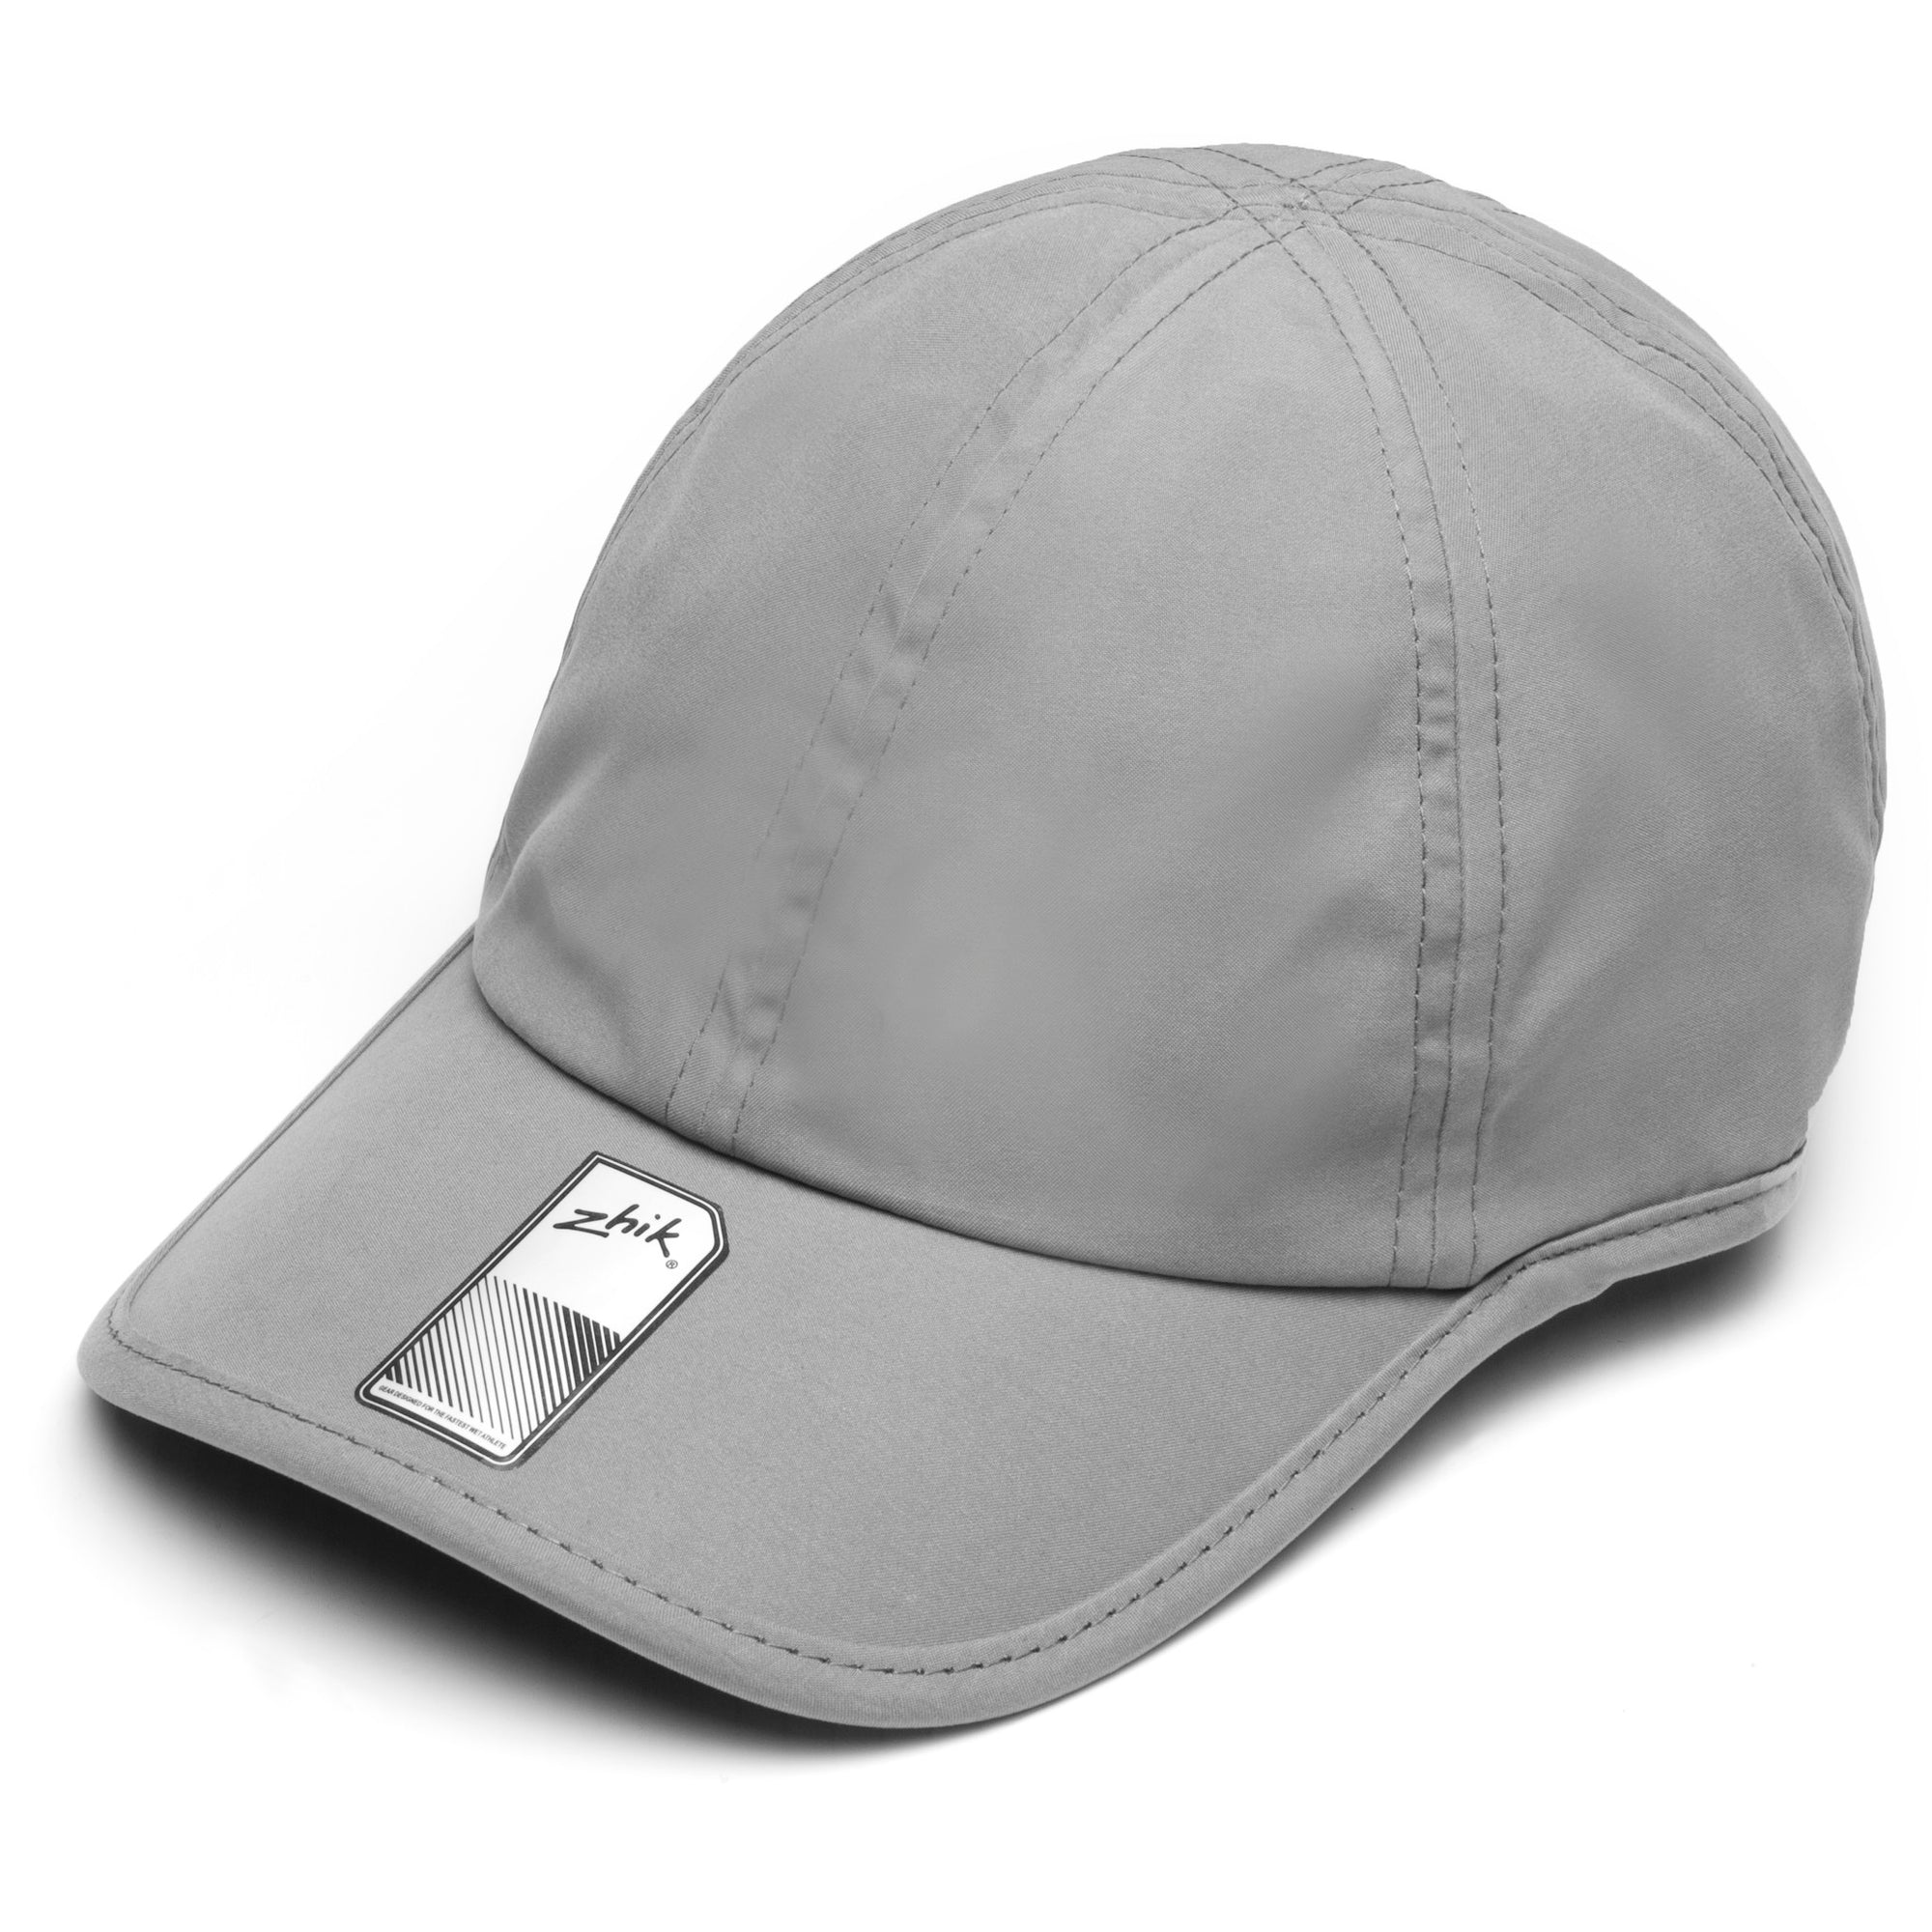 Zhik Team Sailing Cap